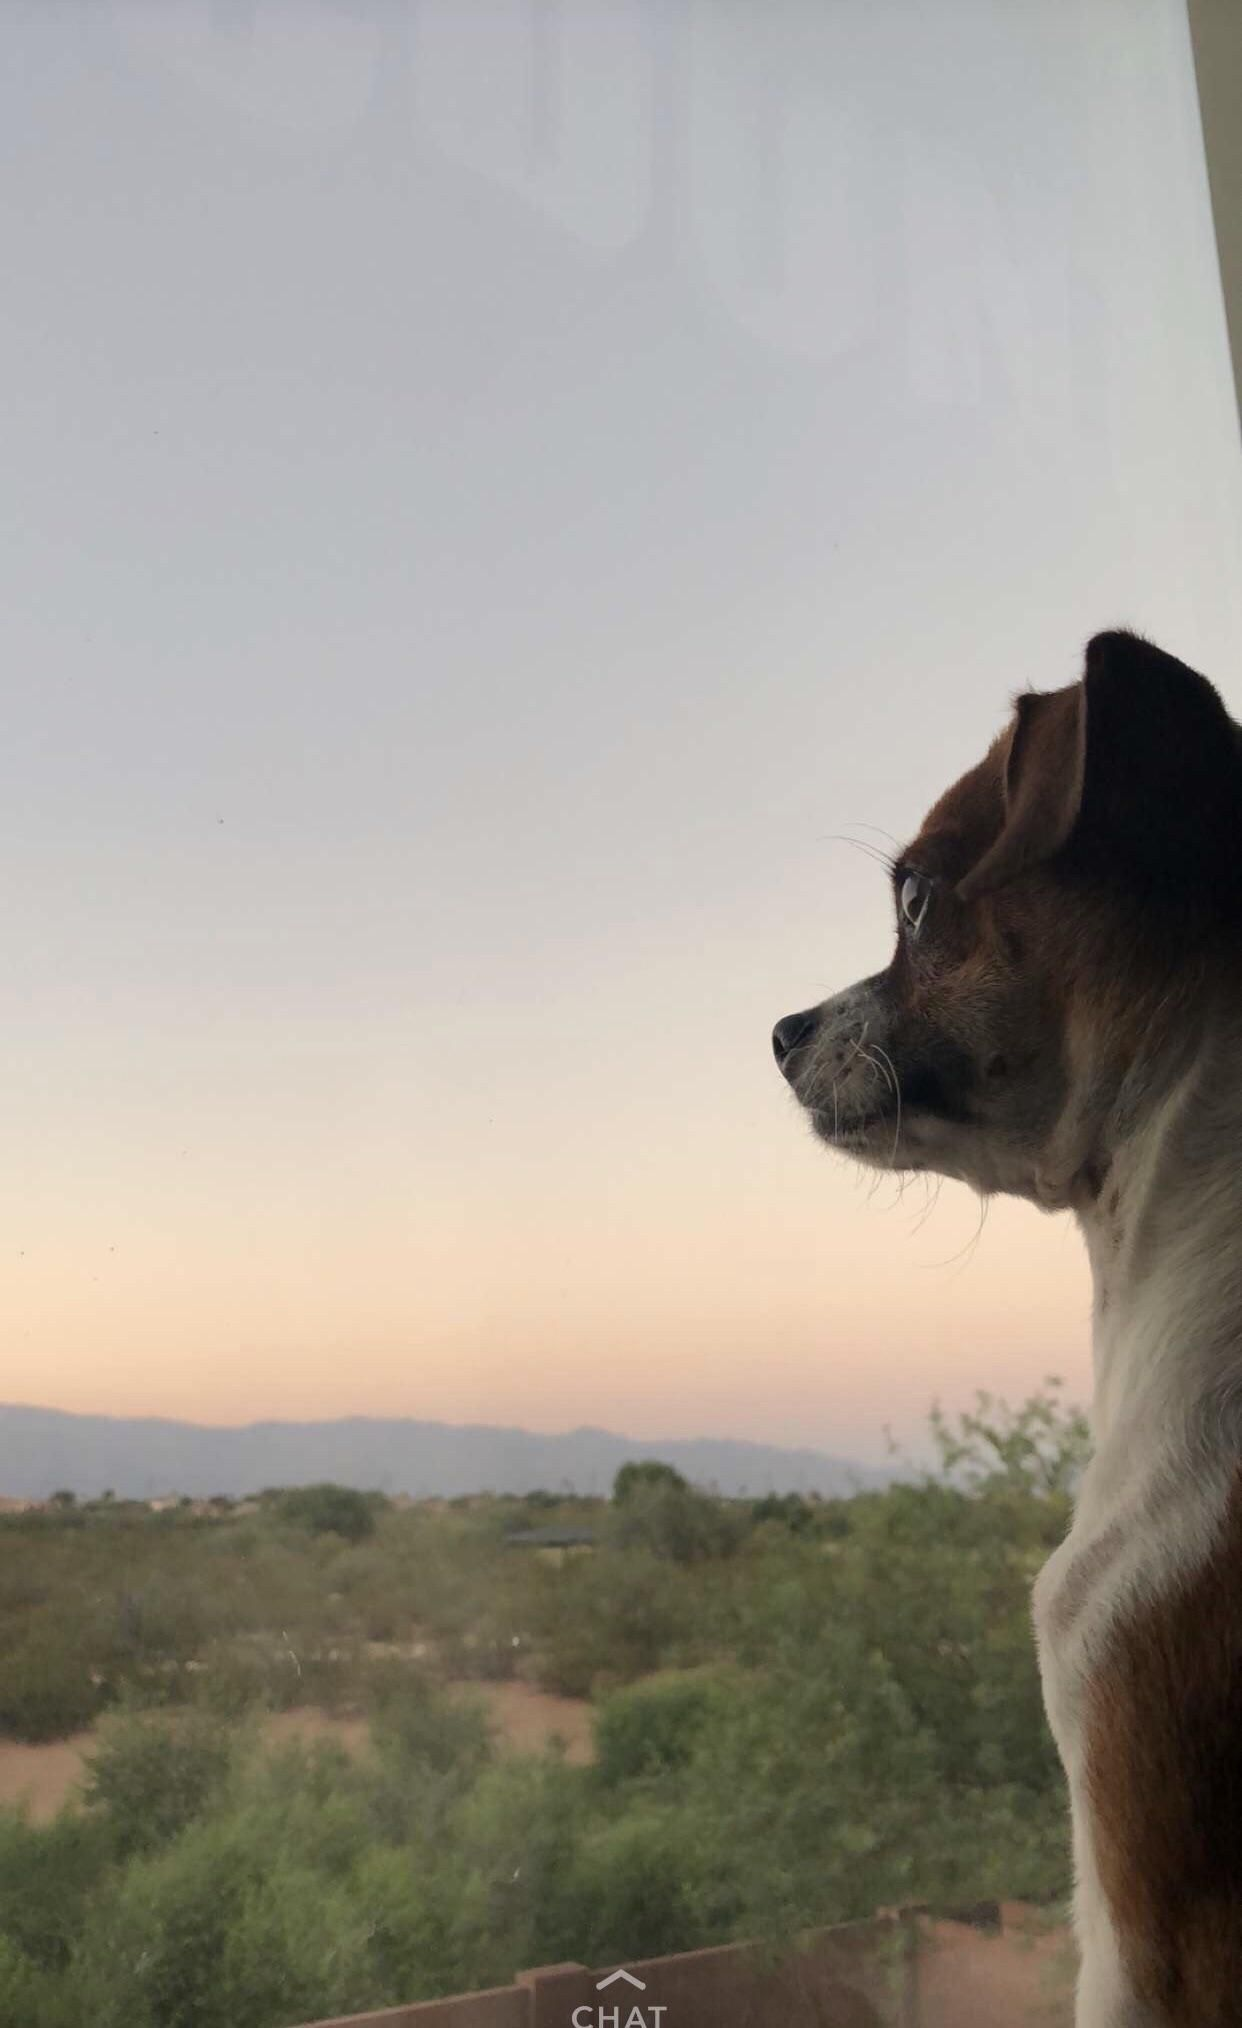 PsBattle: Dog profile with sunset in the background ##reddit